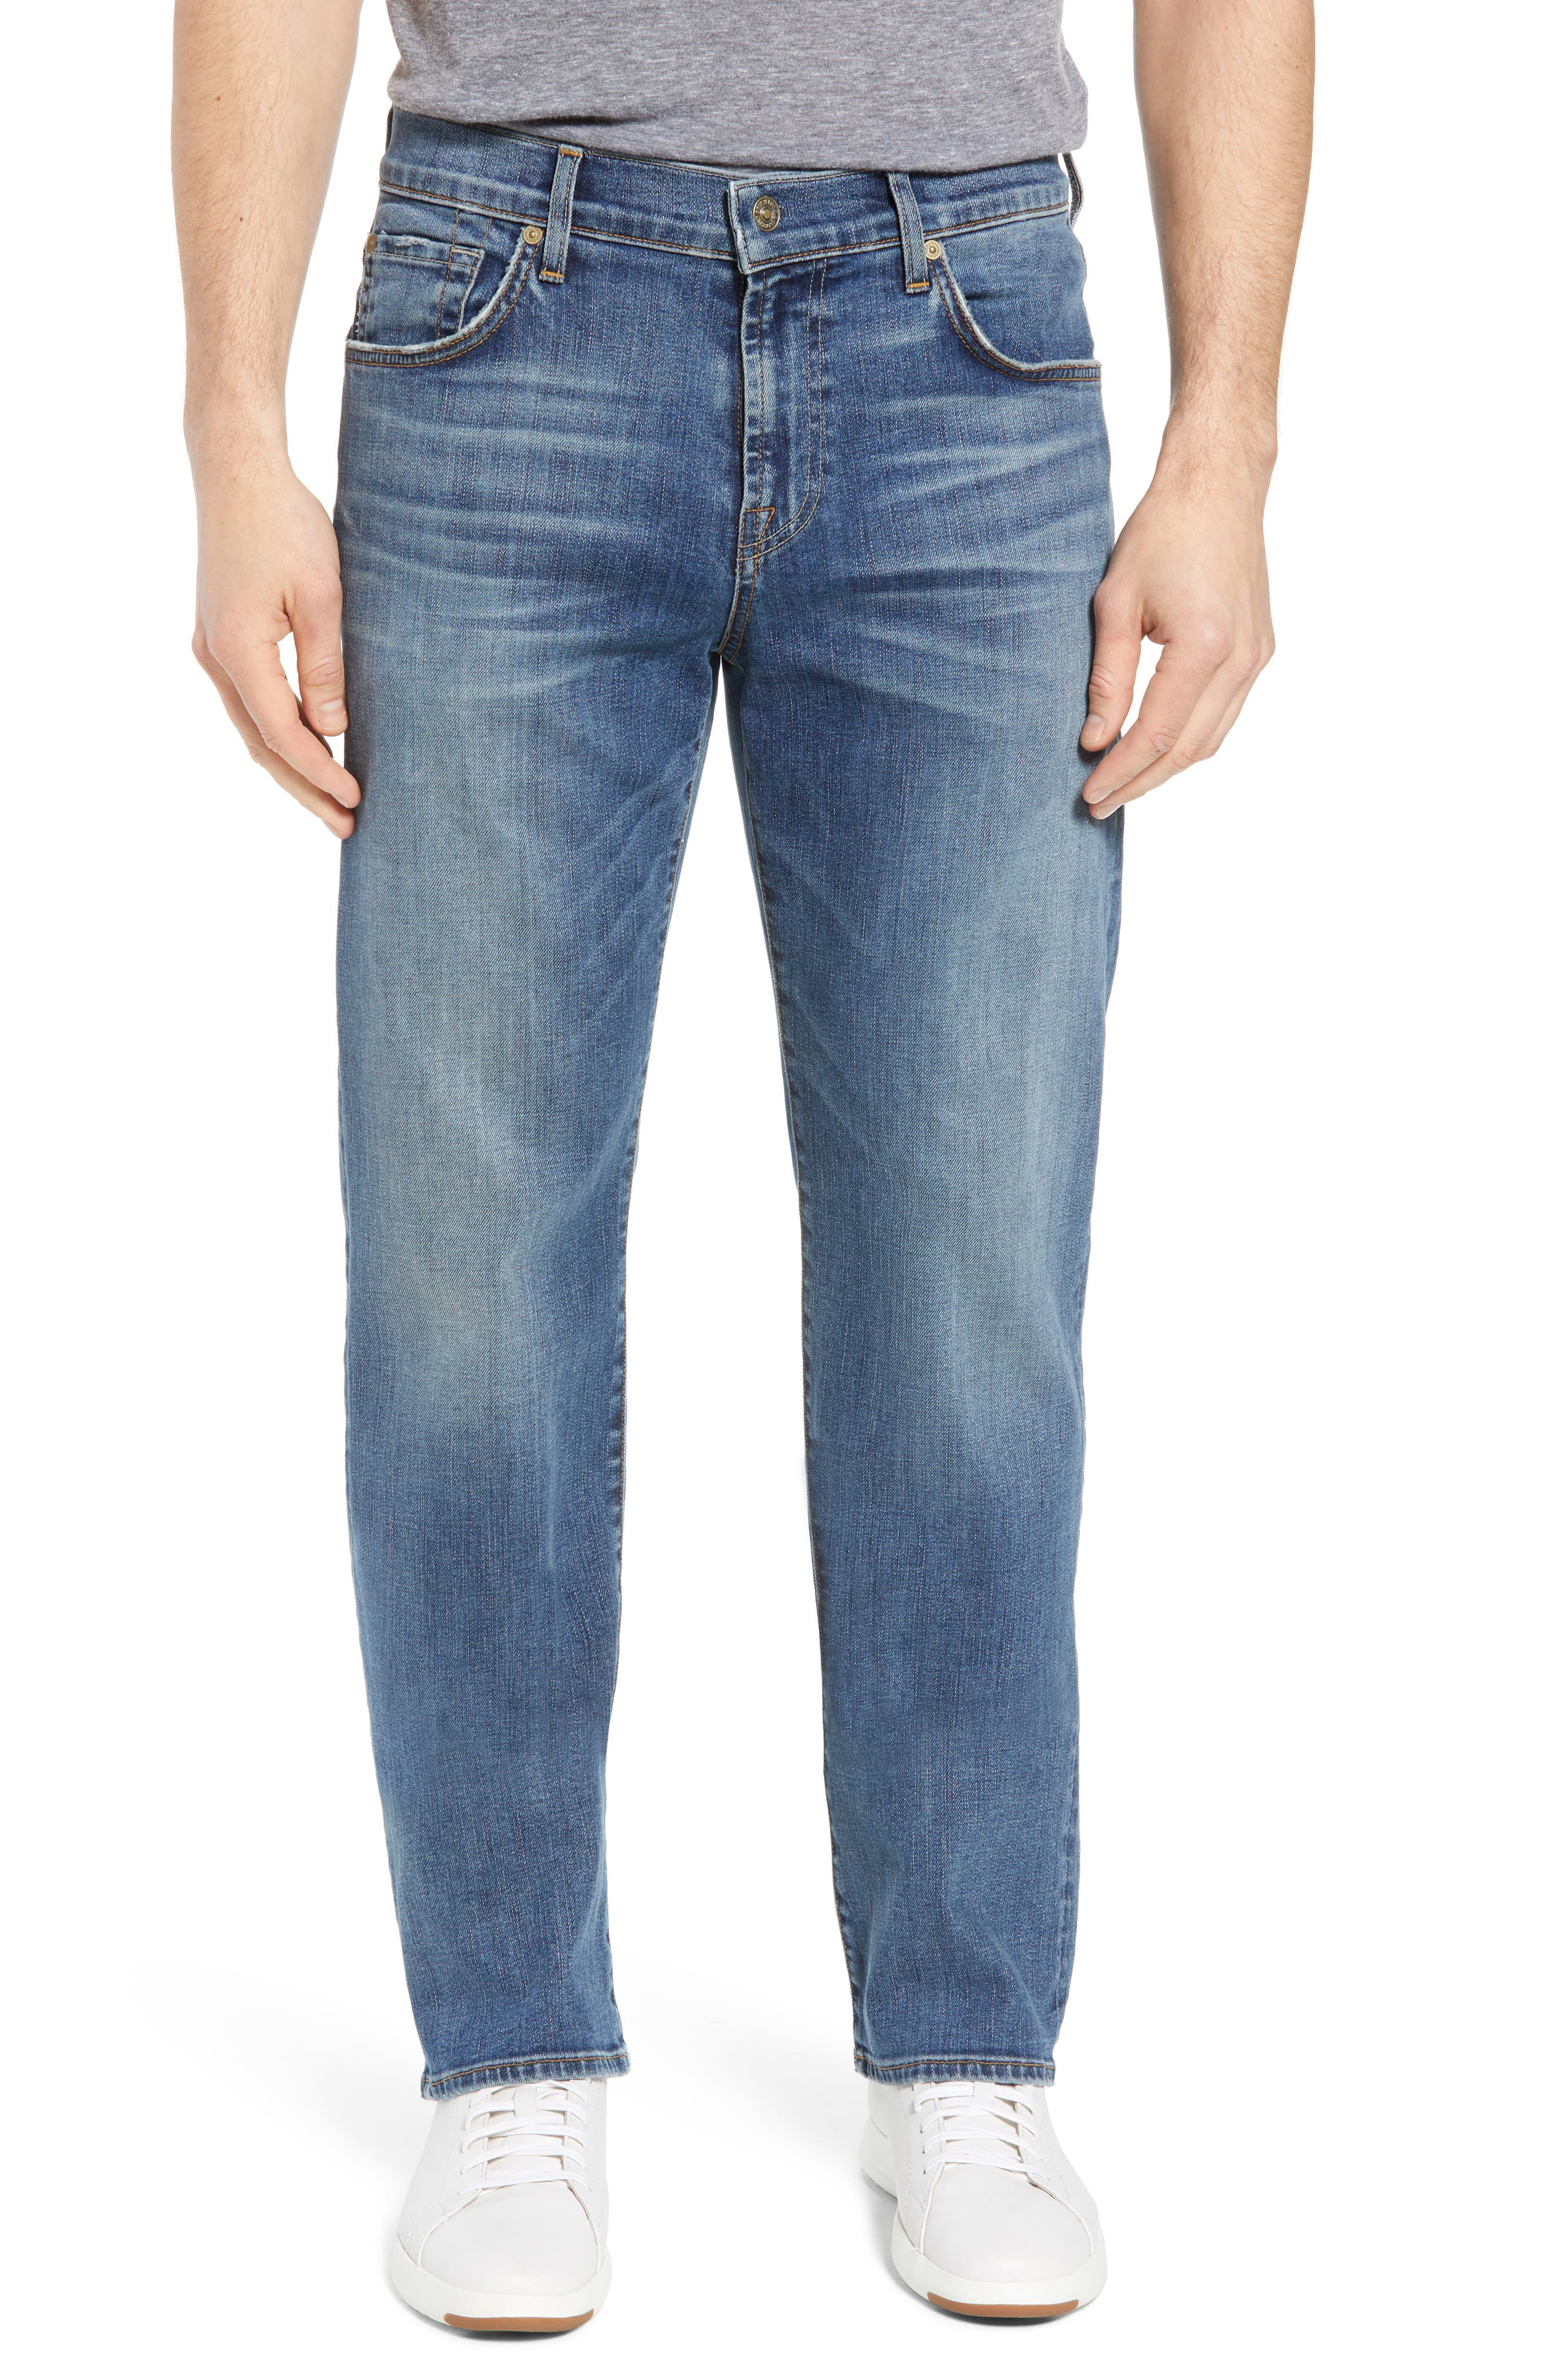 Luxe Performance - Austyn Relaxed Fit Jeans,                             Main thumbnail 1, color,                             Bedrock